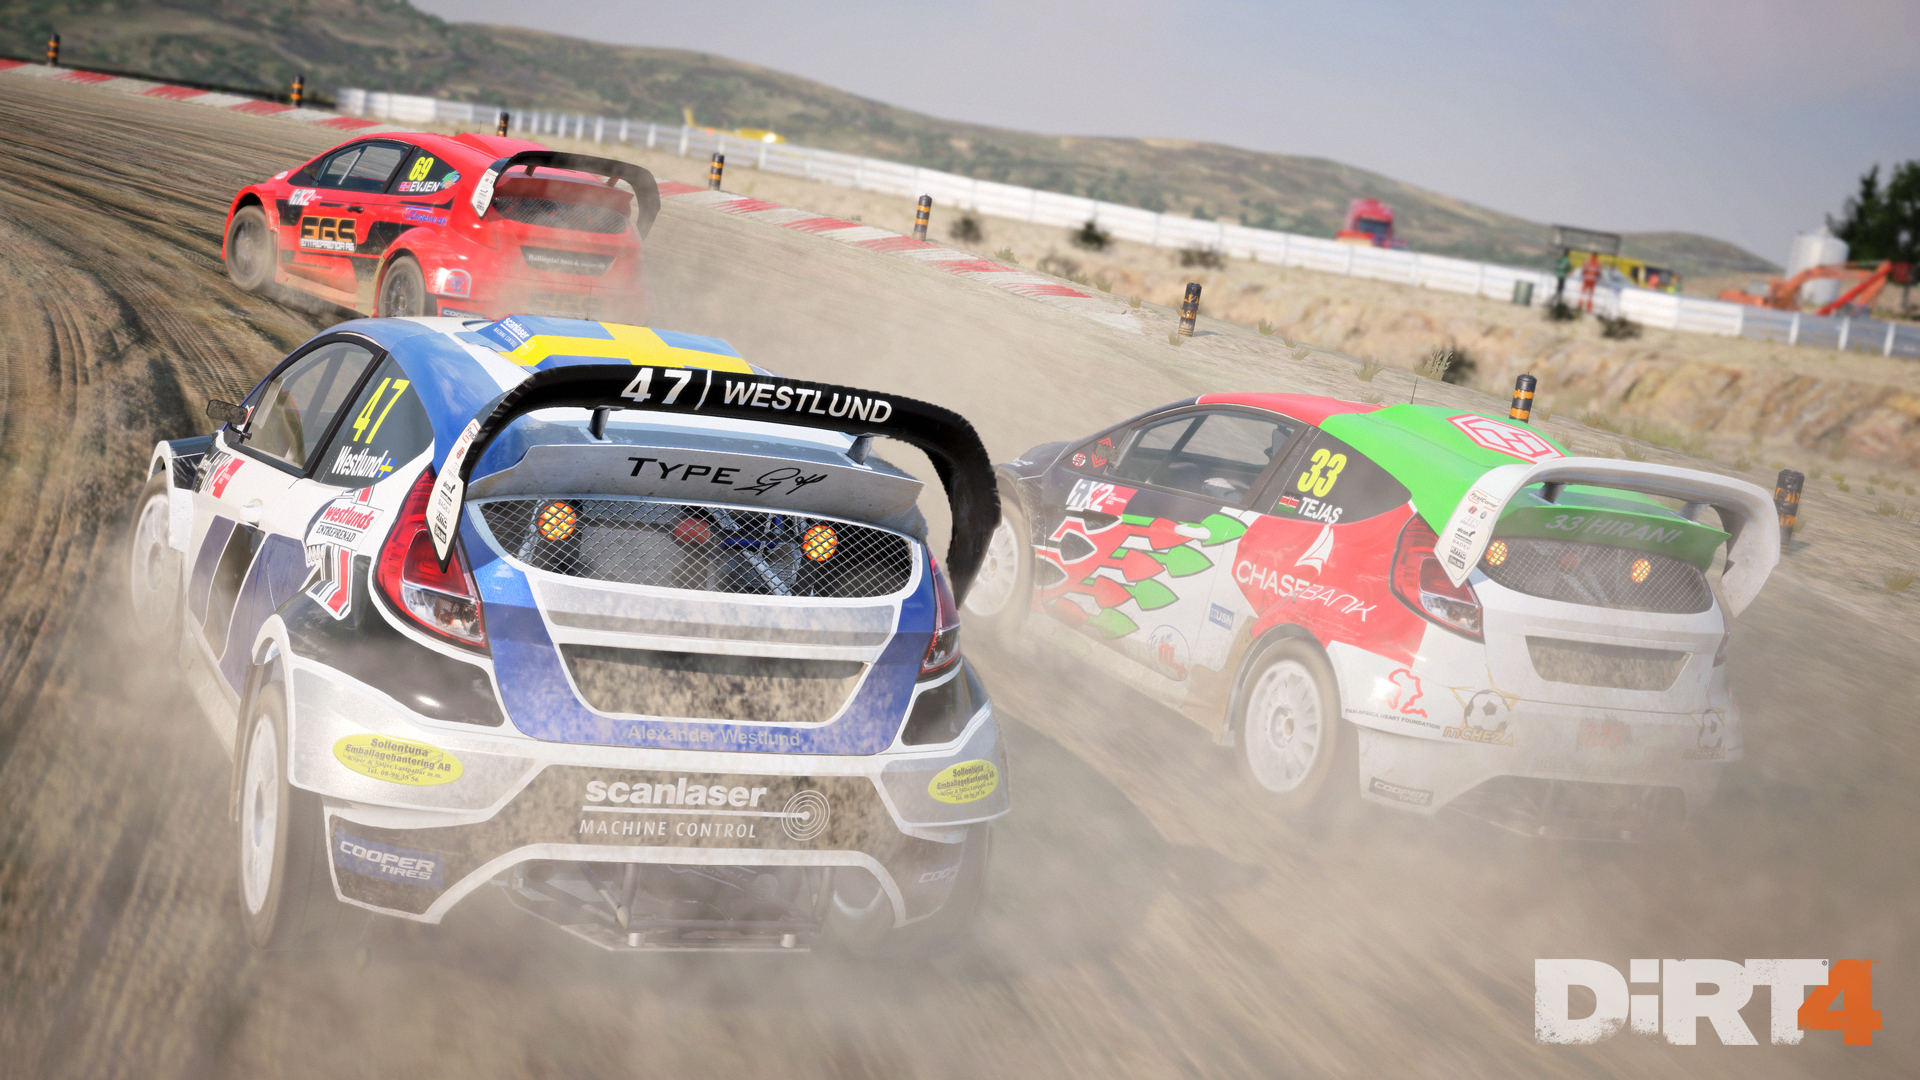 DiRT4 - screen - RX - Montalegre - dirt